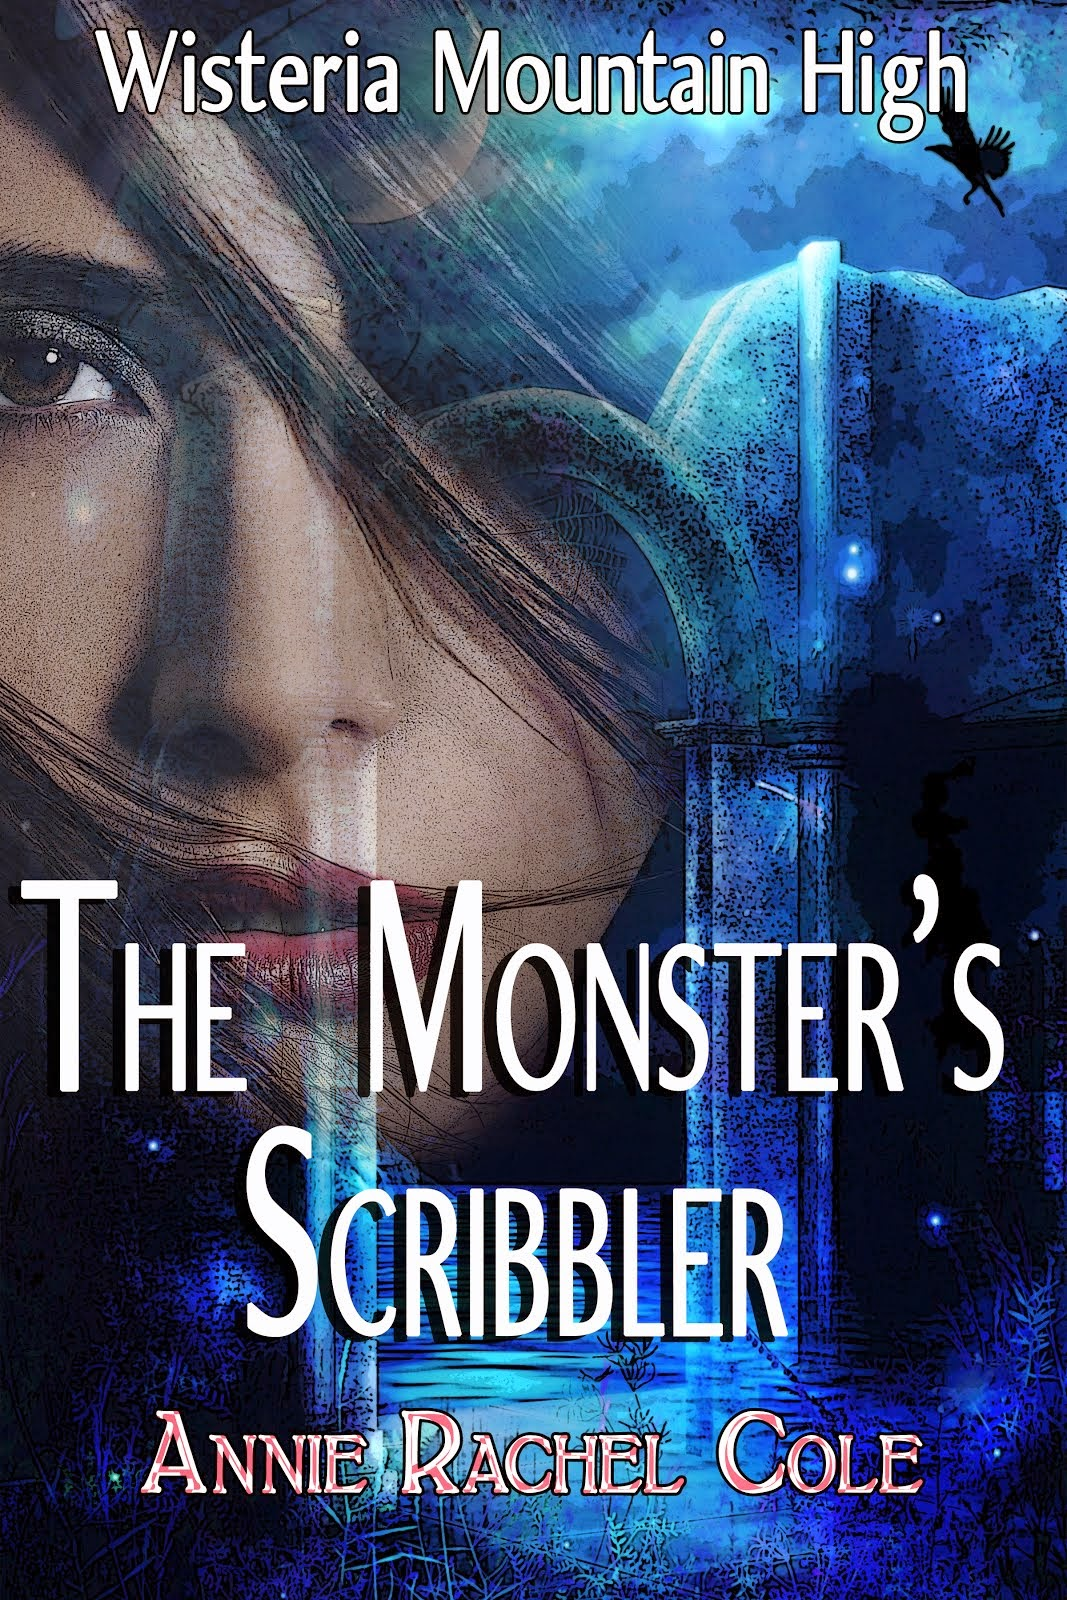 The Monster's Scribbler